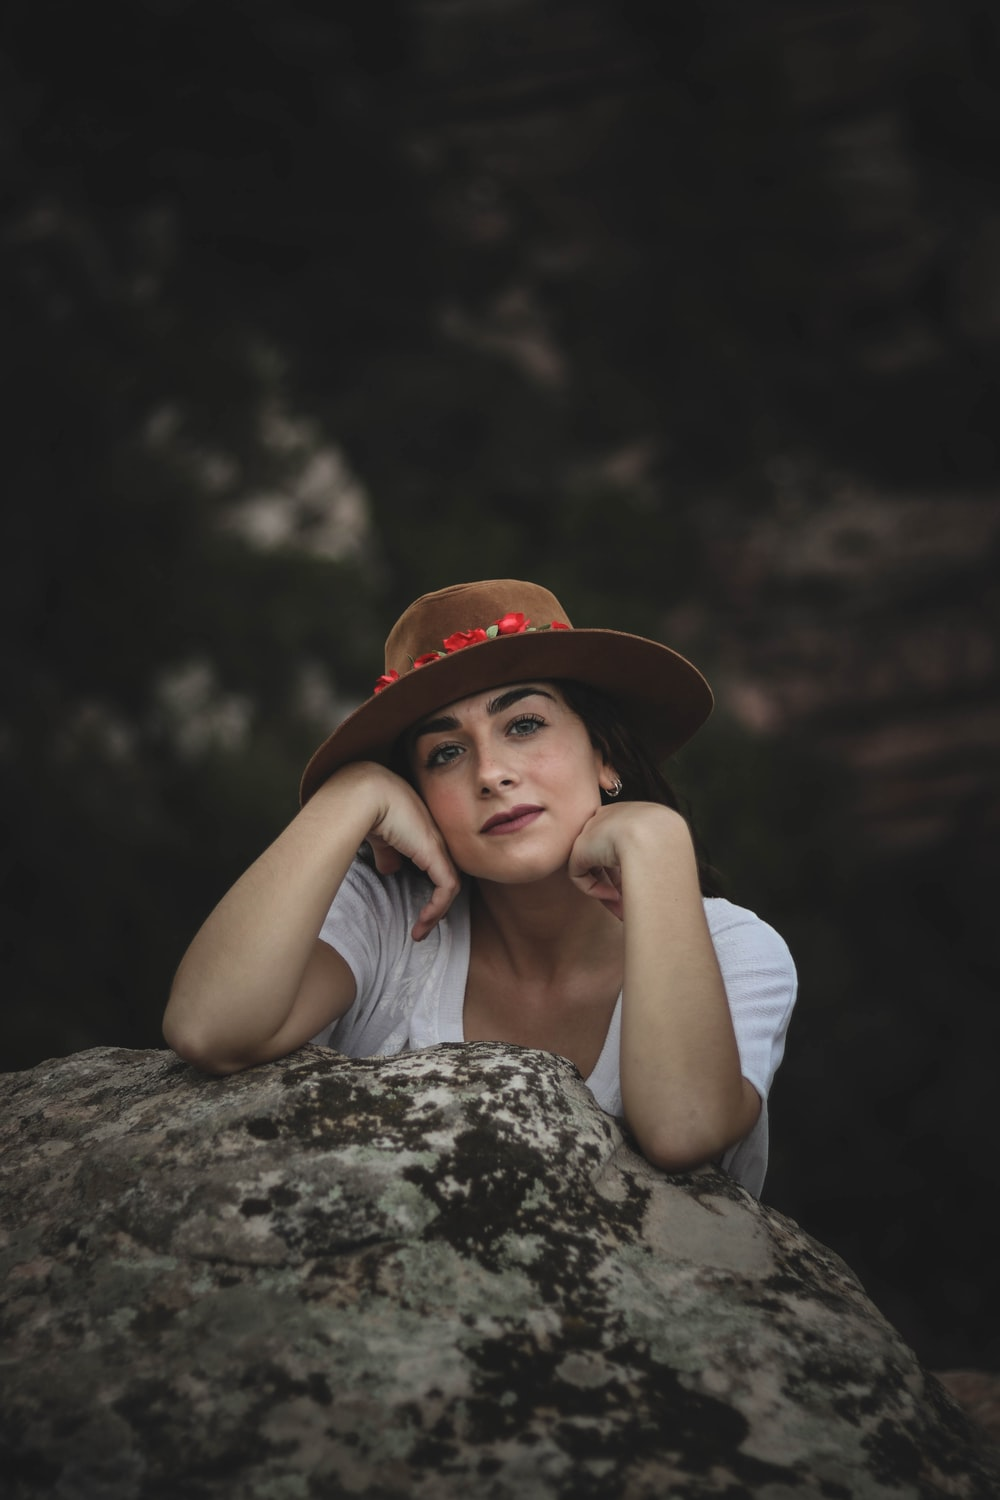 woman wearing hat leaning on gray rock formation